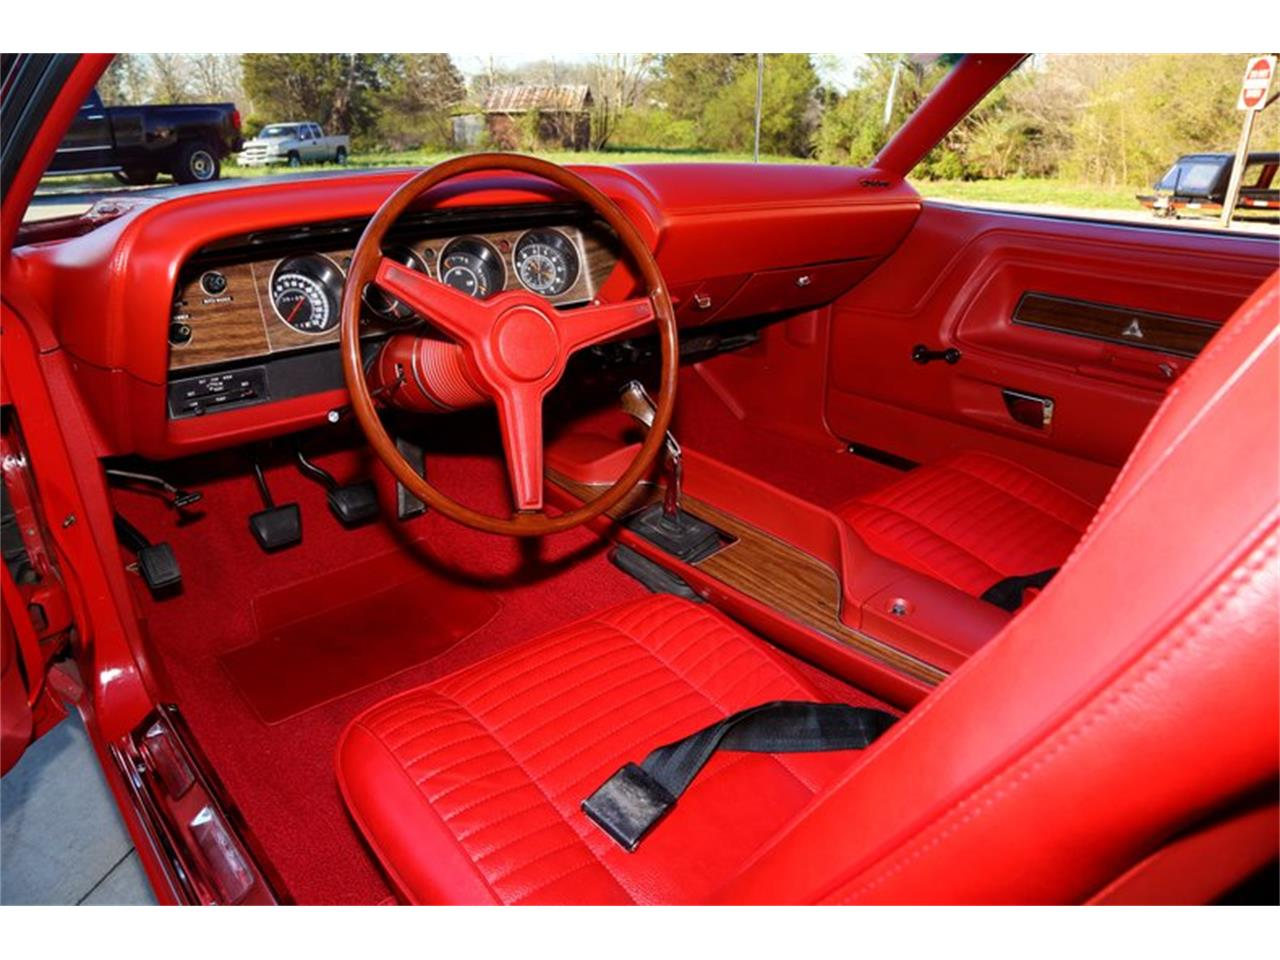 Large Picture of Classic 1970 Dodge Challenger located in Tennessee - $77,995.00 Offered by Smoky Mountain Traders - QKDF